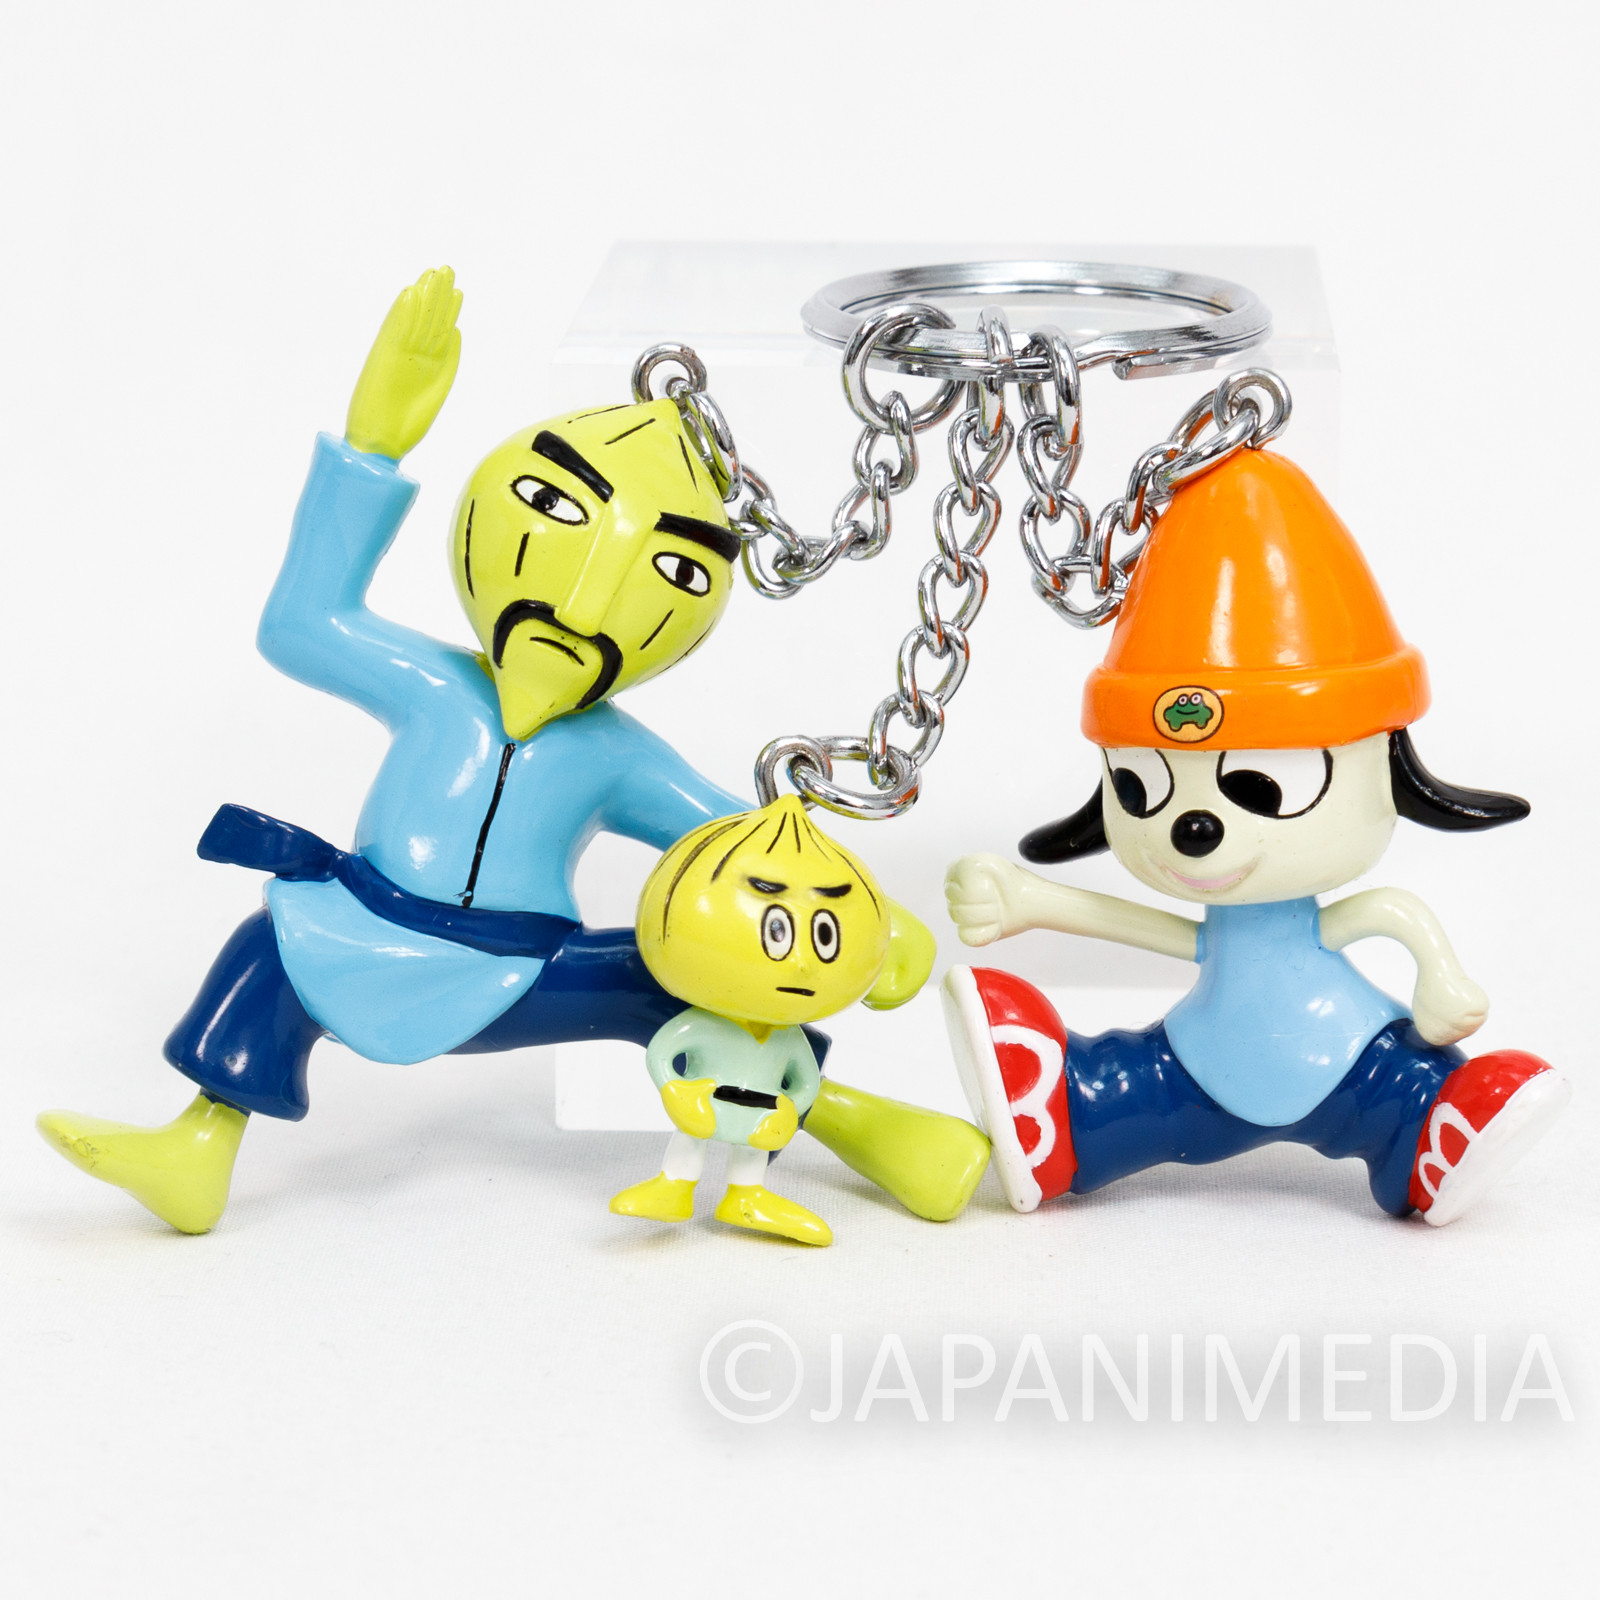 Parappa The Rapper Triple Character Figure Key Chain JAPAN ANIME GAME 2